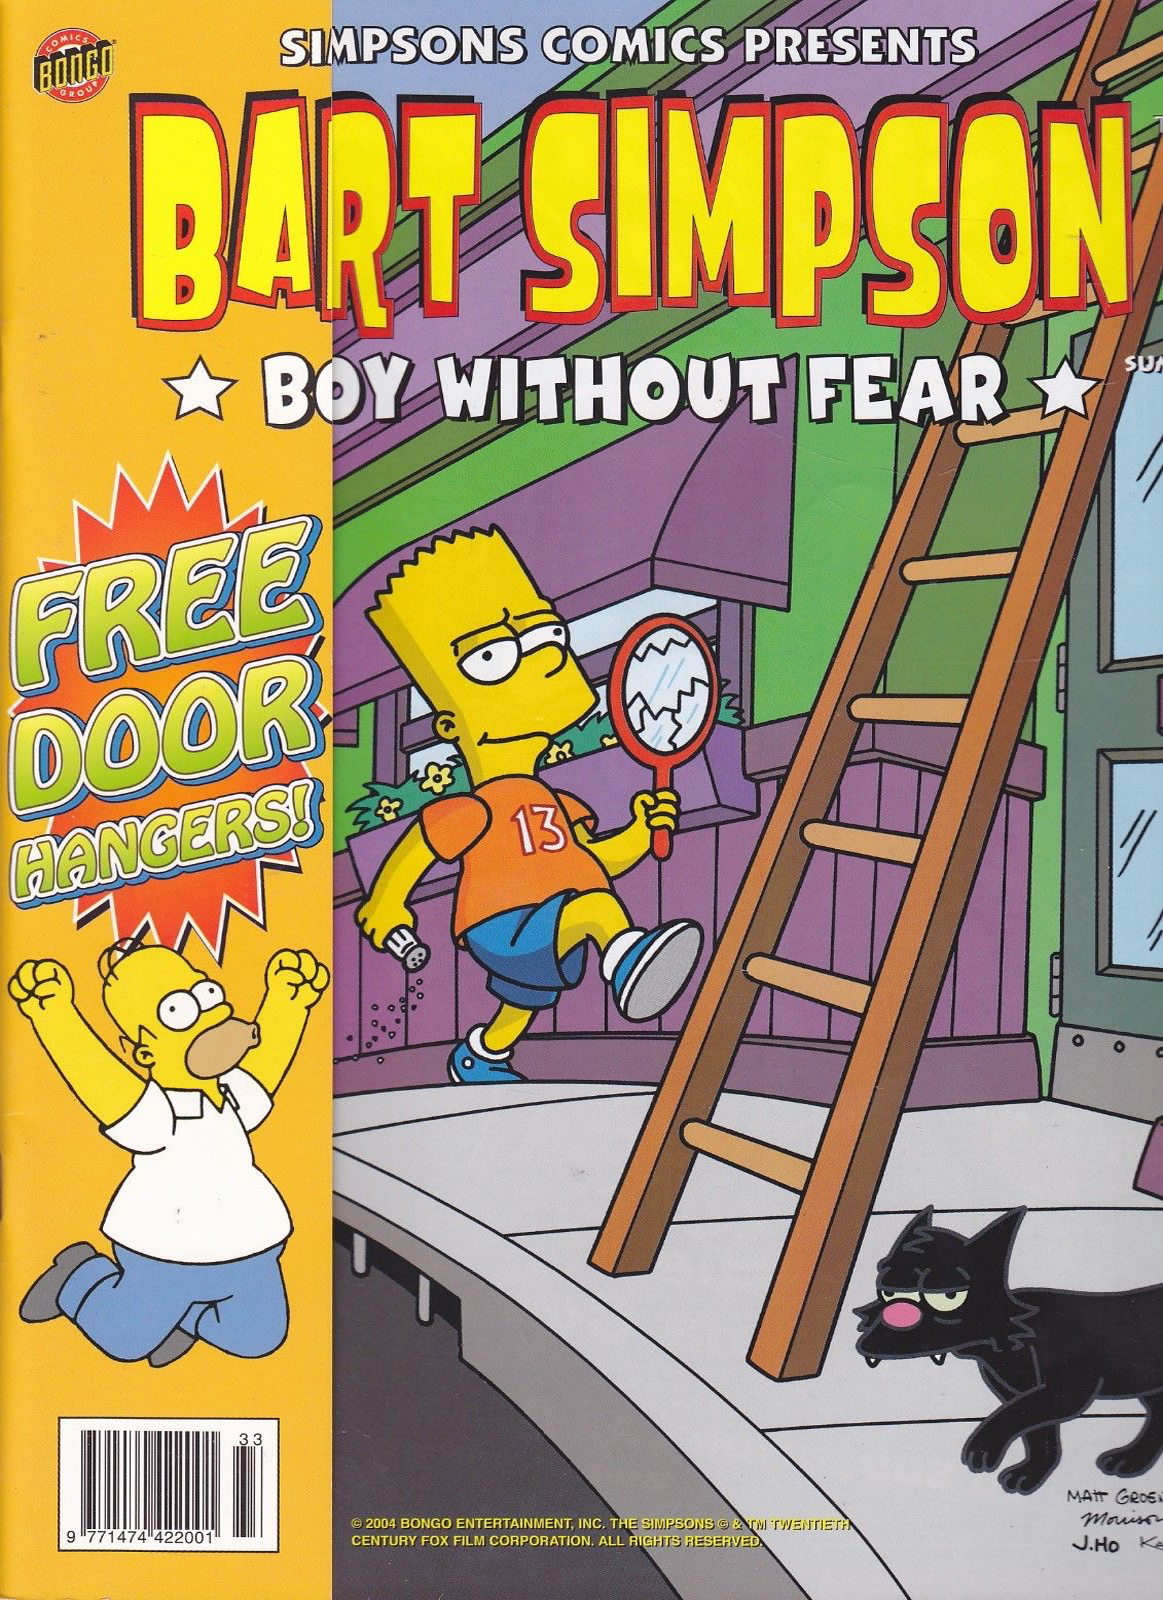 Bart Simpson Wikisimpsons The Simpsons Wiki